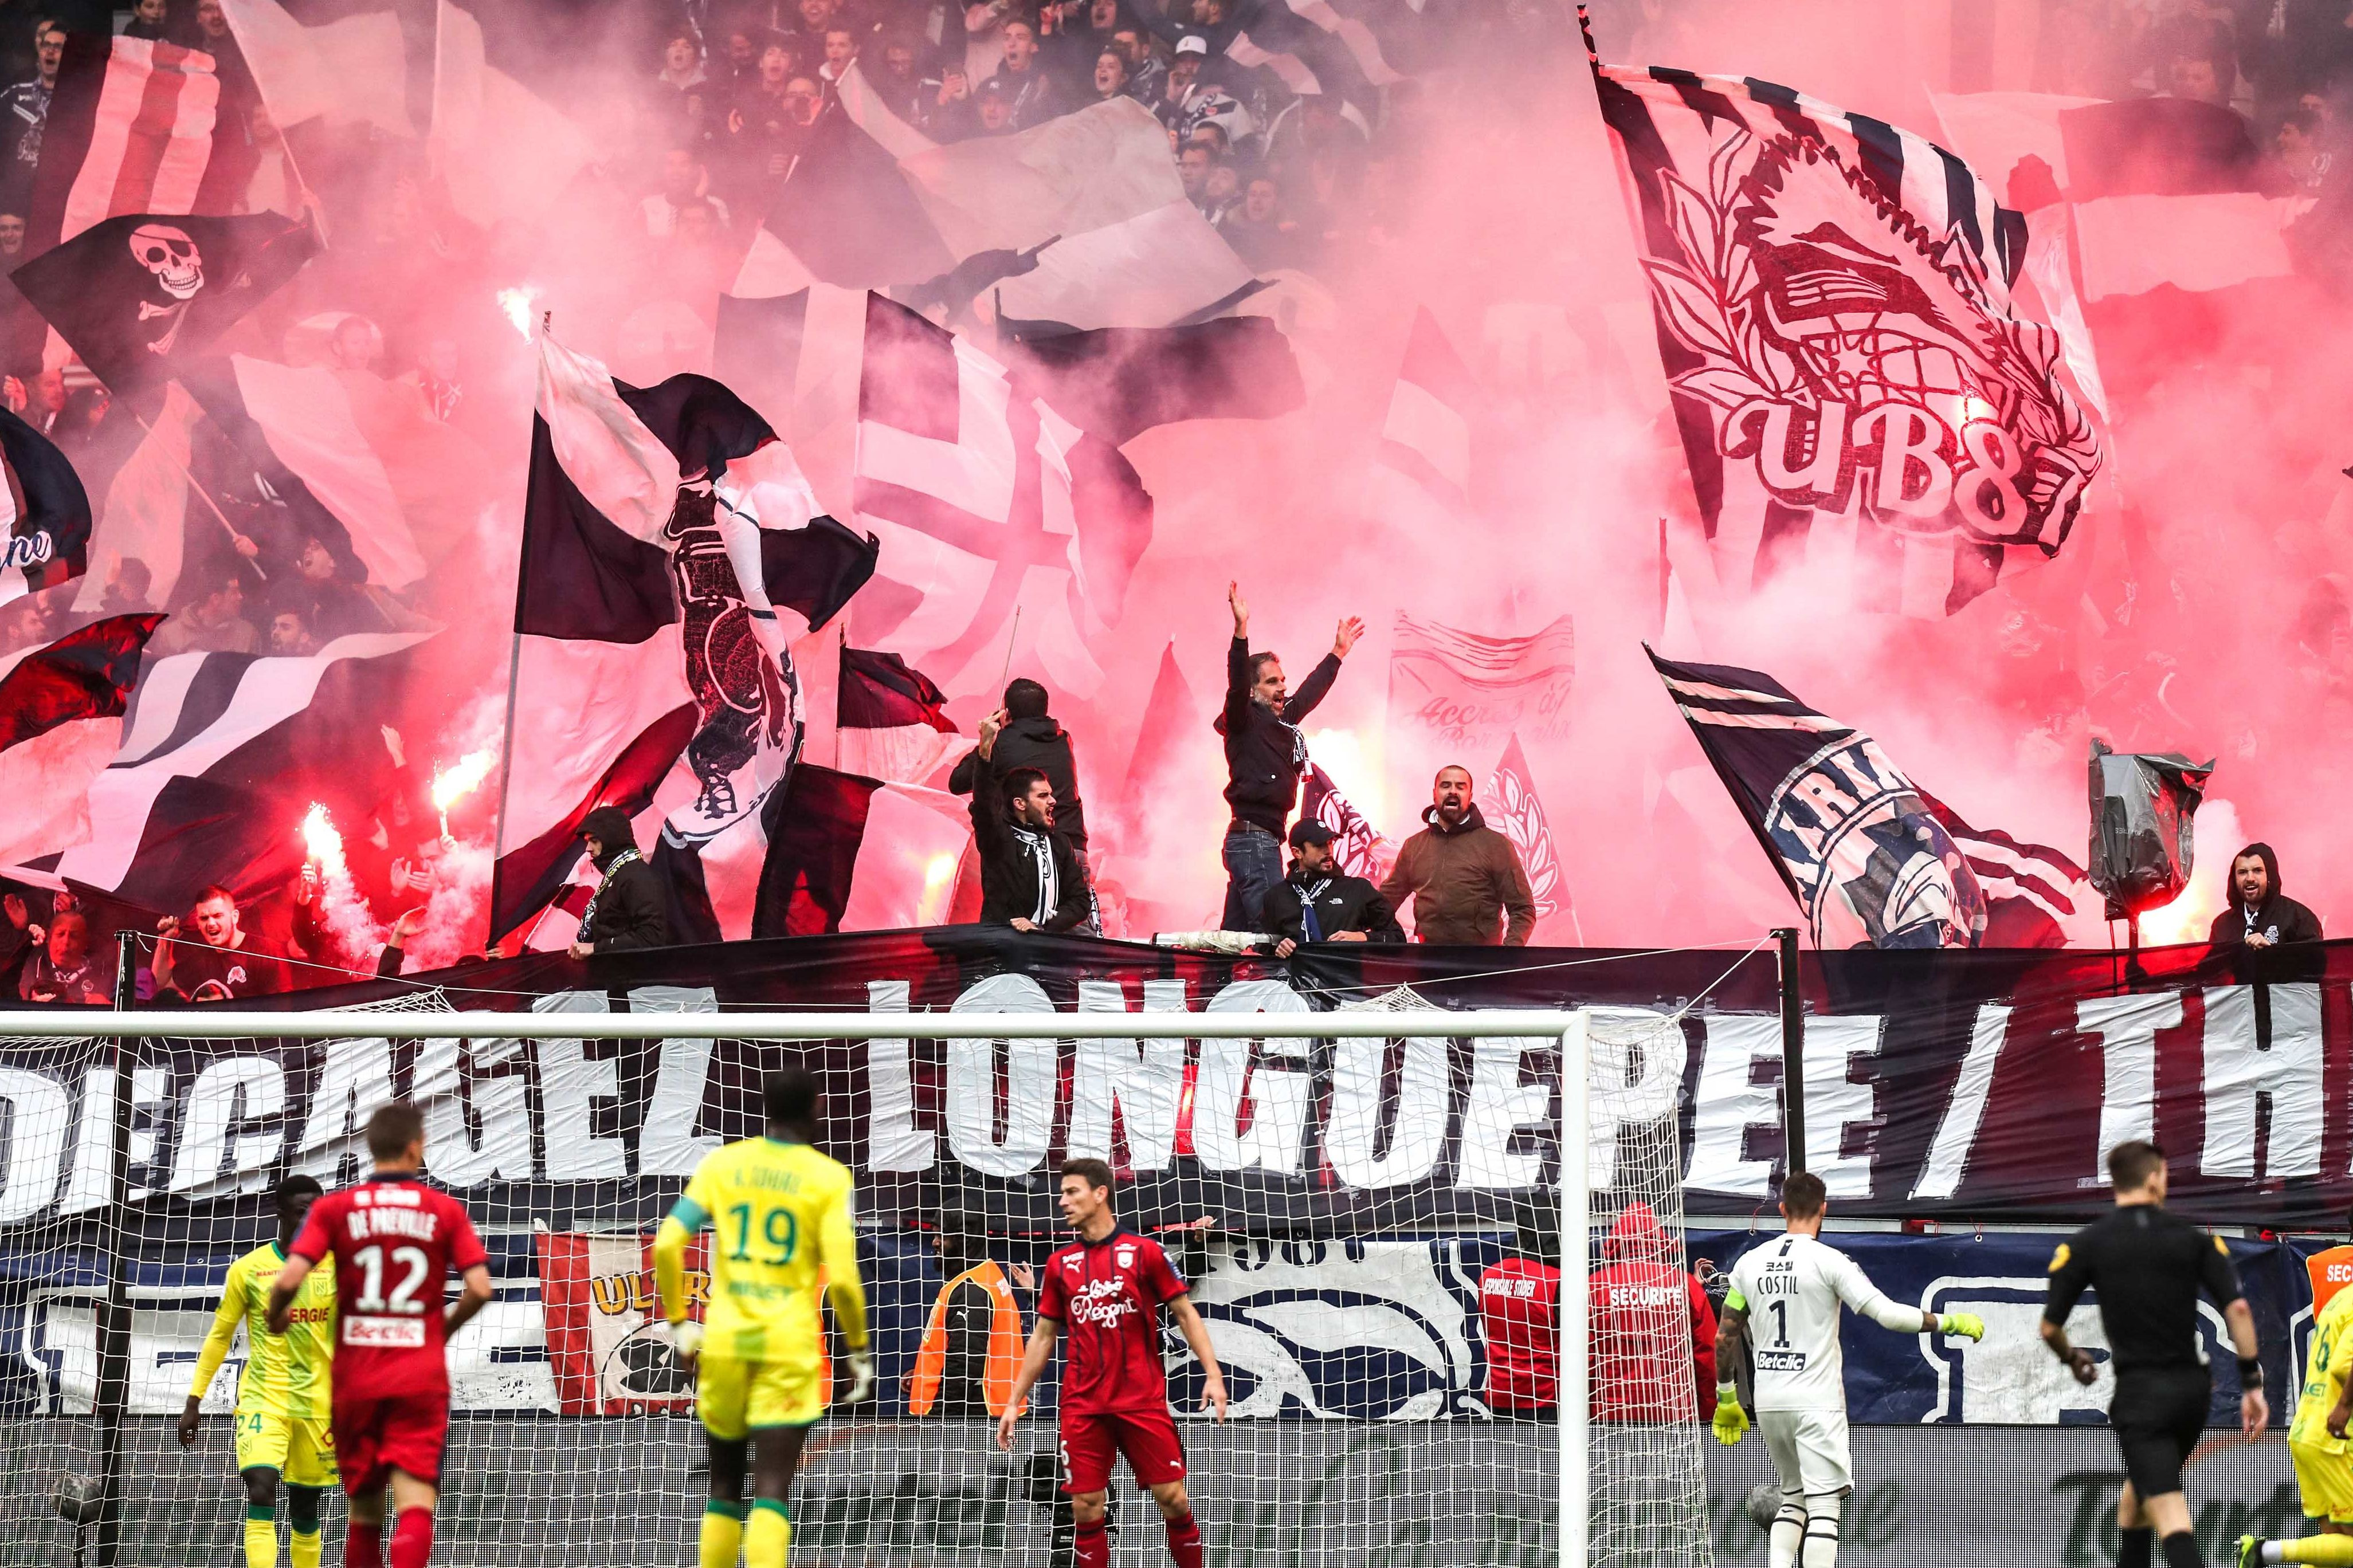 longuepee virage sud supporters démission